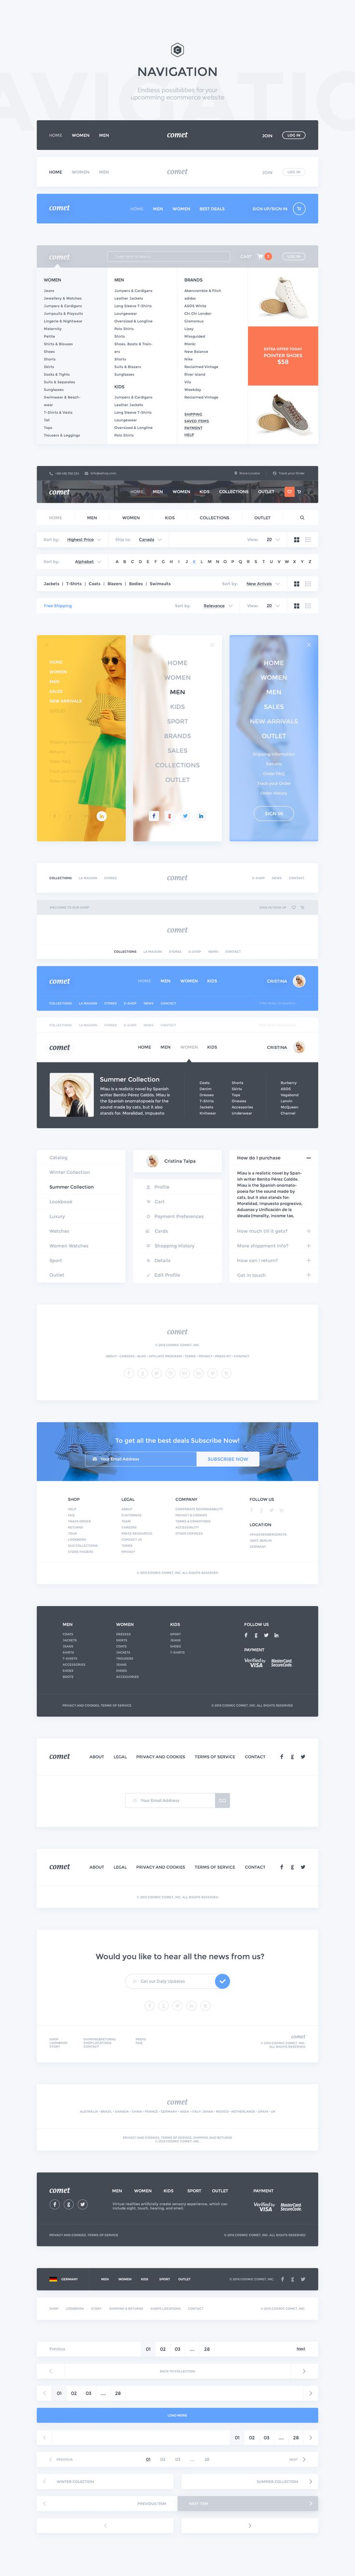 Comet Ecommerce UI Kit by Comet Shop on @creativemarket. If you like UX, design, or design thinking, check out theuxblog.com